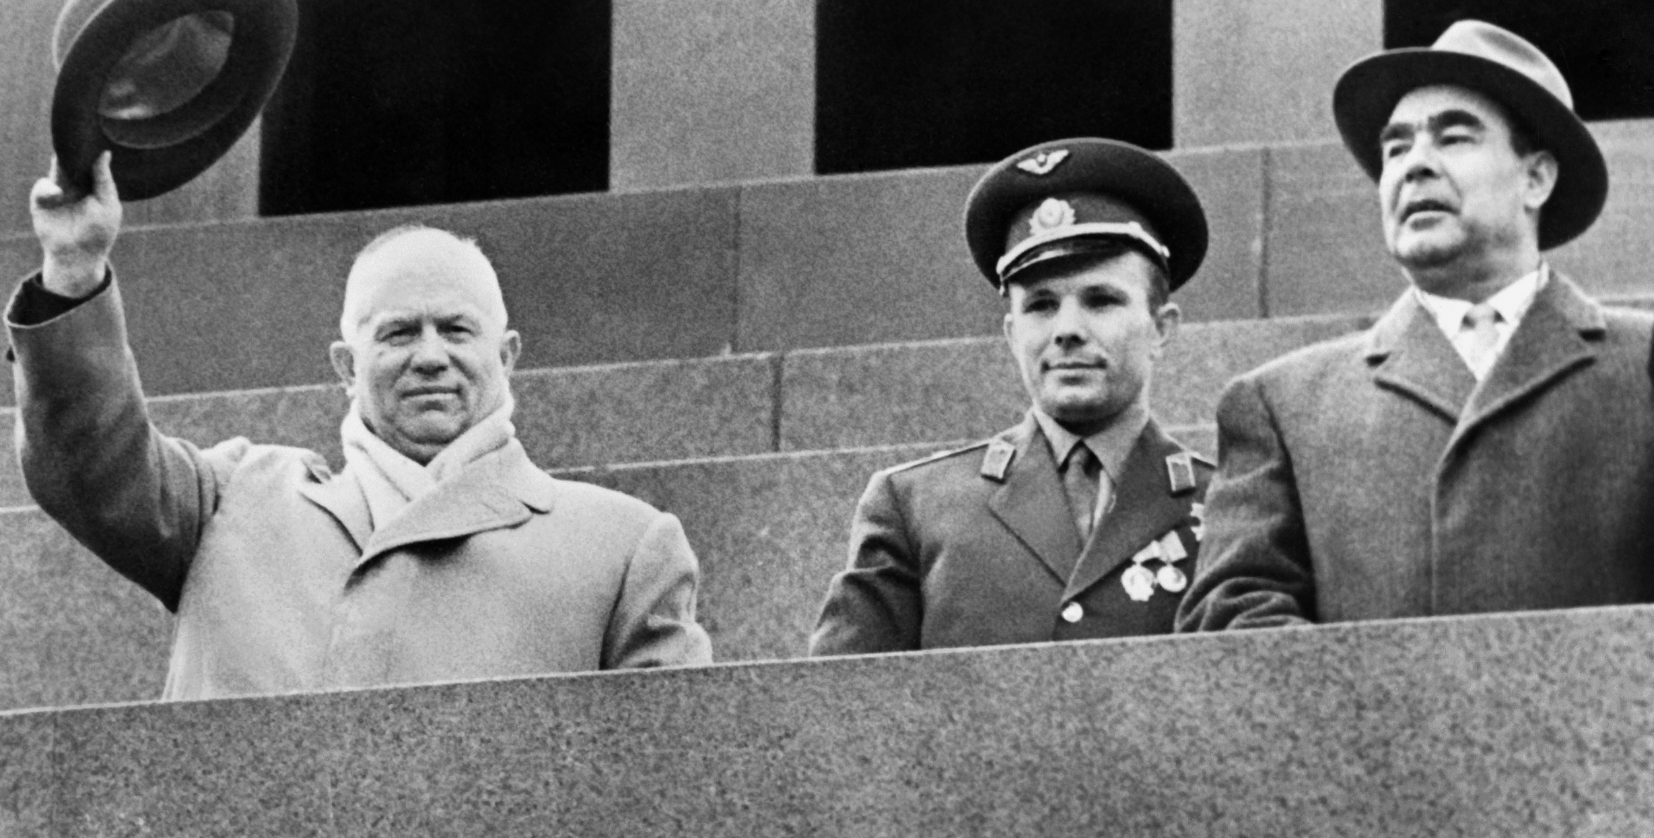 Soviet Cosmonaut Yuri Gagarin (centre), Soviet leader Nikita Khrushchev (left) and Leonid Brezhnev (right) salute the crowd on May 1, 1961 during a gathering on Red Square to celebrate Gagarin's flight aboard Vostok I. Yuri Gagarin became the first human to travel in space aboard Vostok I and the first to orbit the Earth. For decades, the U.S. and the Soviet Union battled to outdo each other in space. Any echoes in today's Arctic? /AFP/GettyImages)